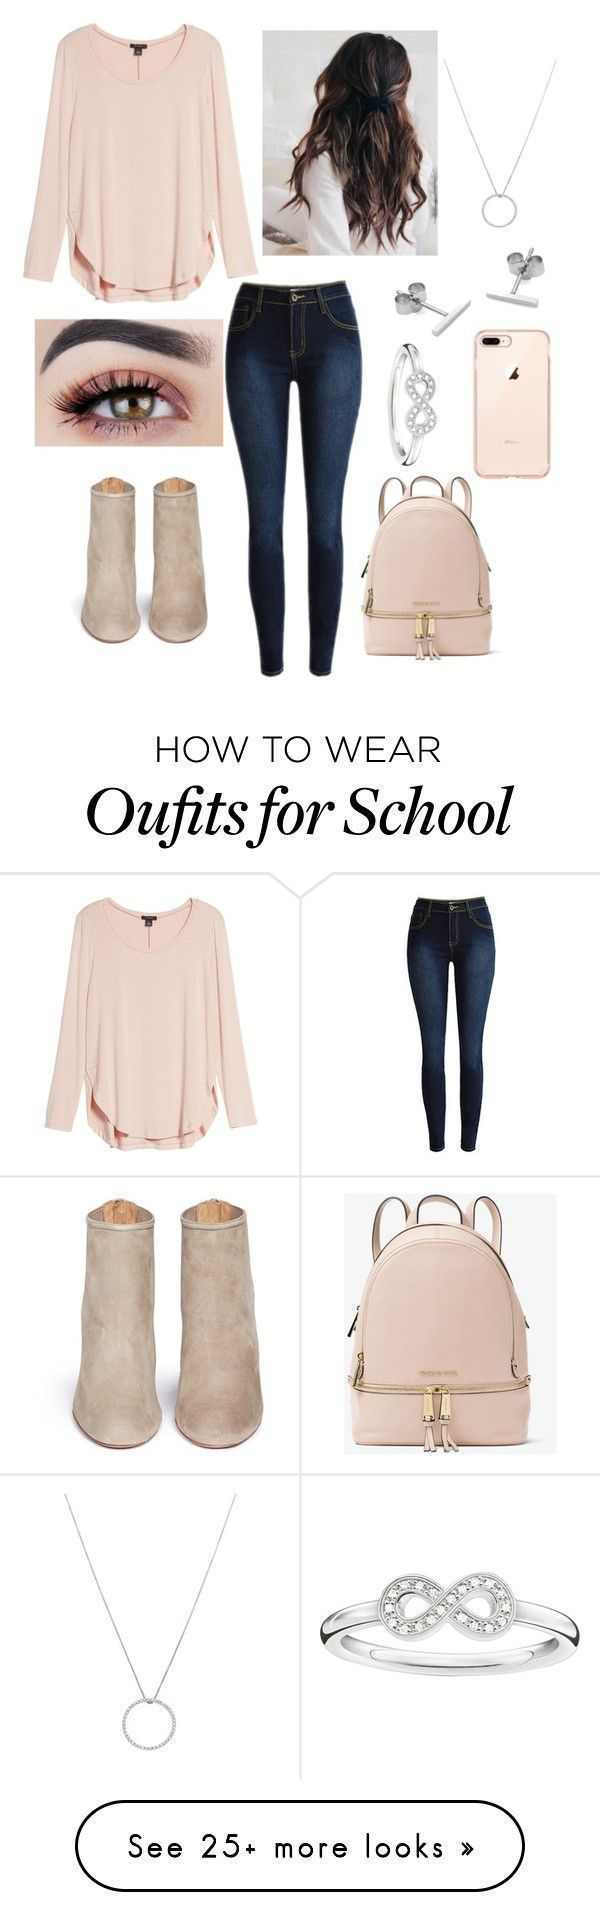 """School outfit"" by pinkj3w3l on Polyvore featuring Halogen, Aquazzura, MICHAEL Michael Kors, Myia Bonner, Roberto Coin and Thomas Sabo #schooloutfits #polyvoreoutfits"